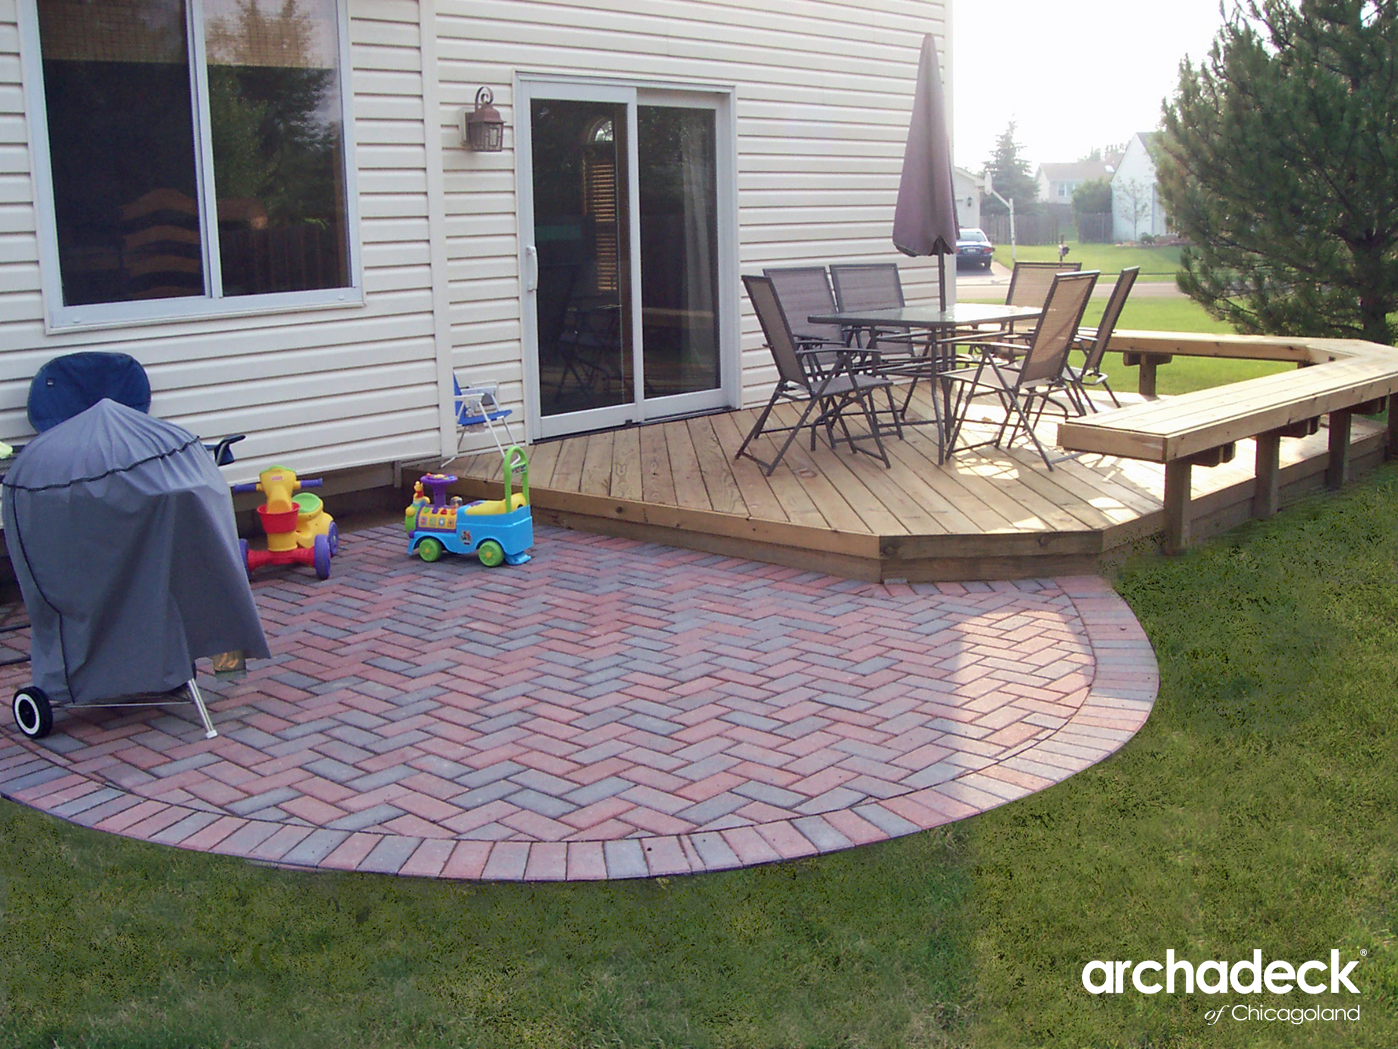 How To Determine How Much Space You Need For Your Deck Or Patio